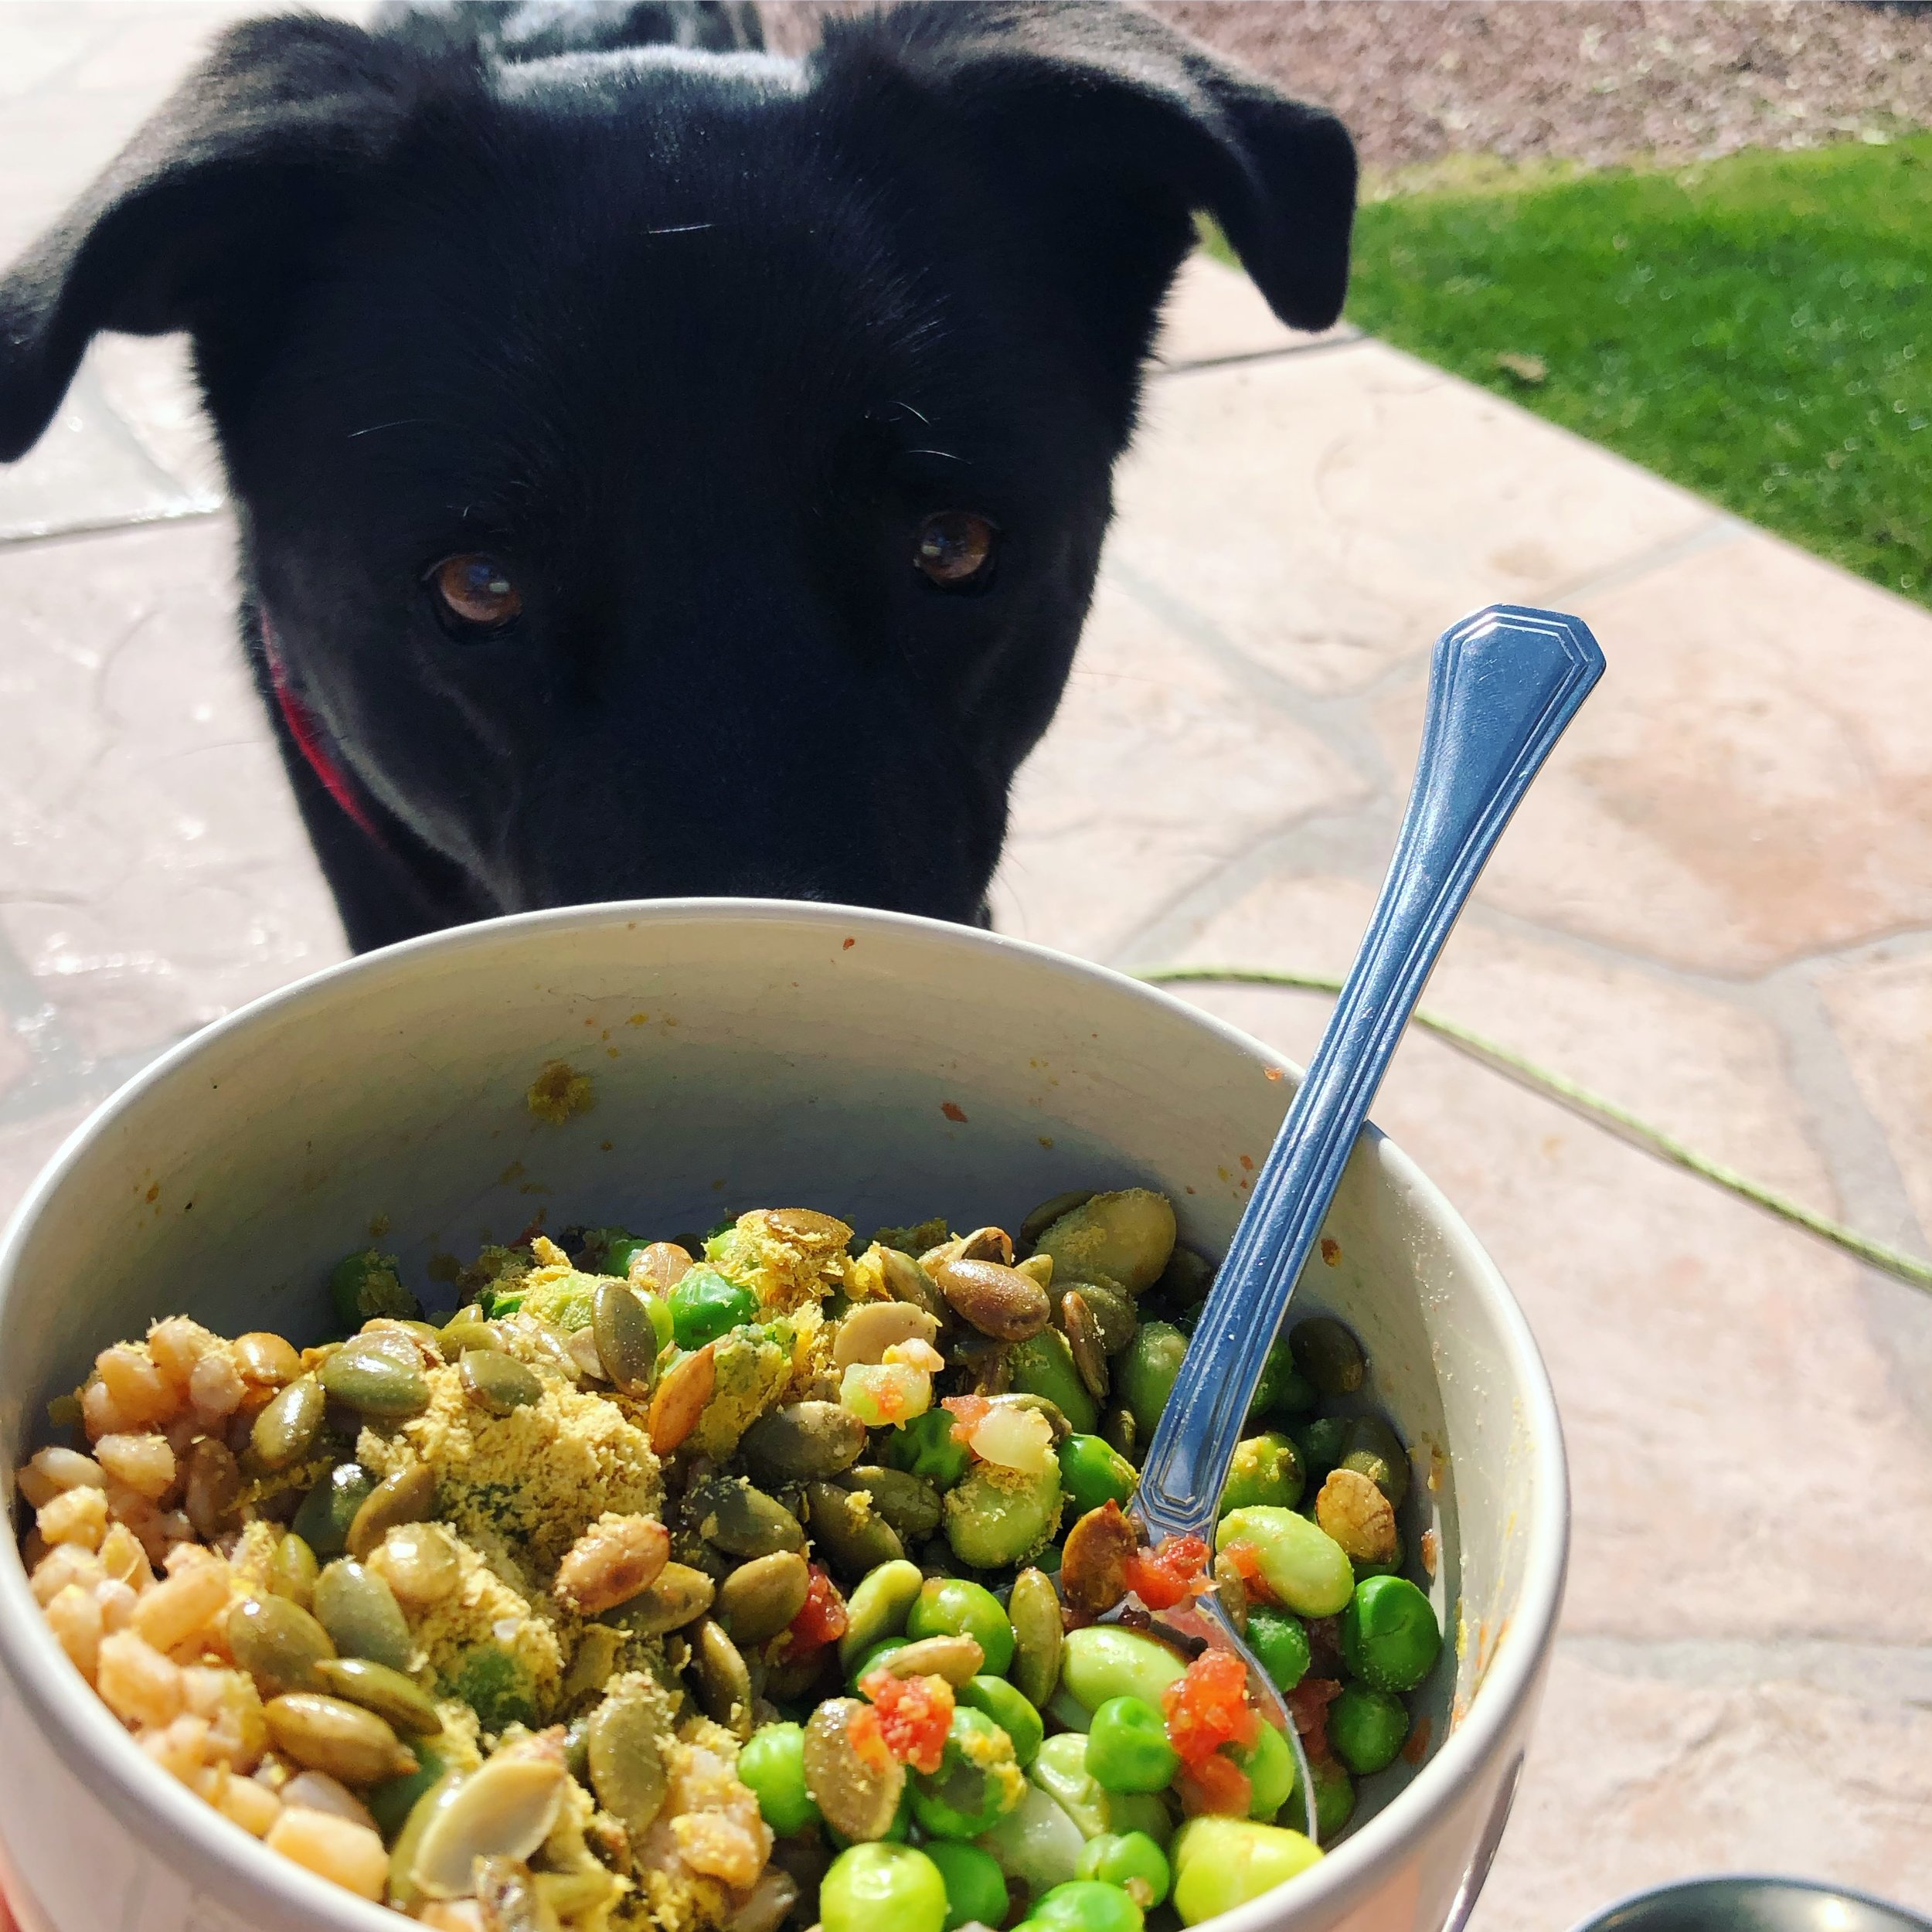 WE EAT SO GOOD, EVEN THE DOGS WANT TO GET ON THE VEGAN TRAIN! (Calm down, they eat a fish and poultry based kibble.)